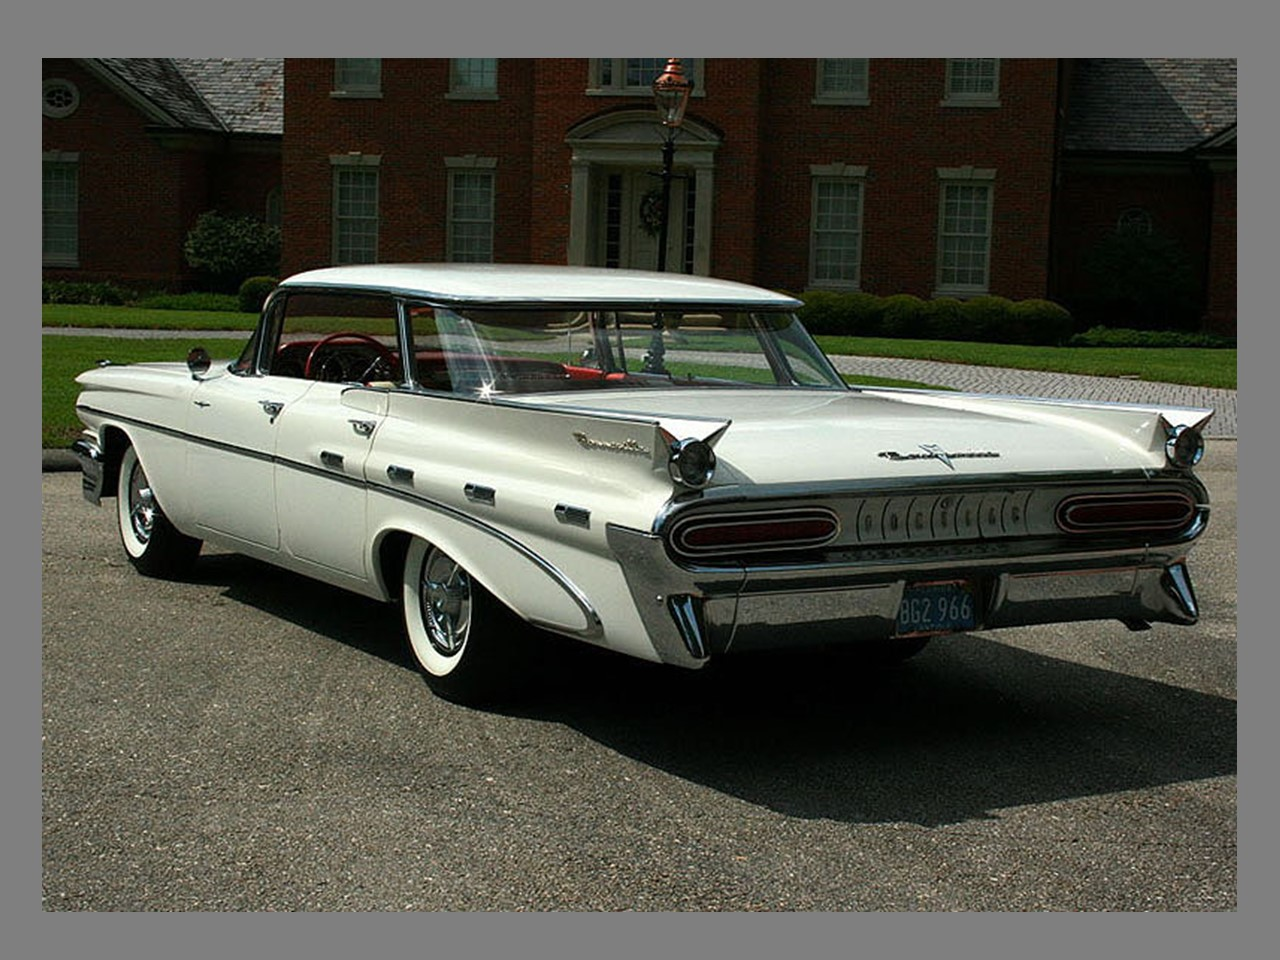 Pontiac Catalina I 1959 - 1960 Sedan-Hardtop #3